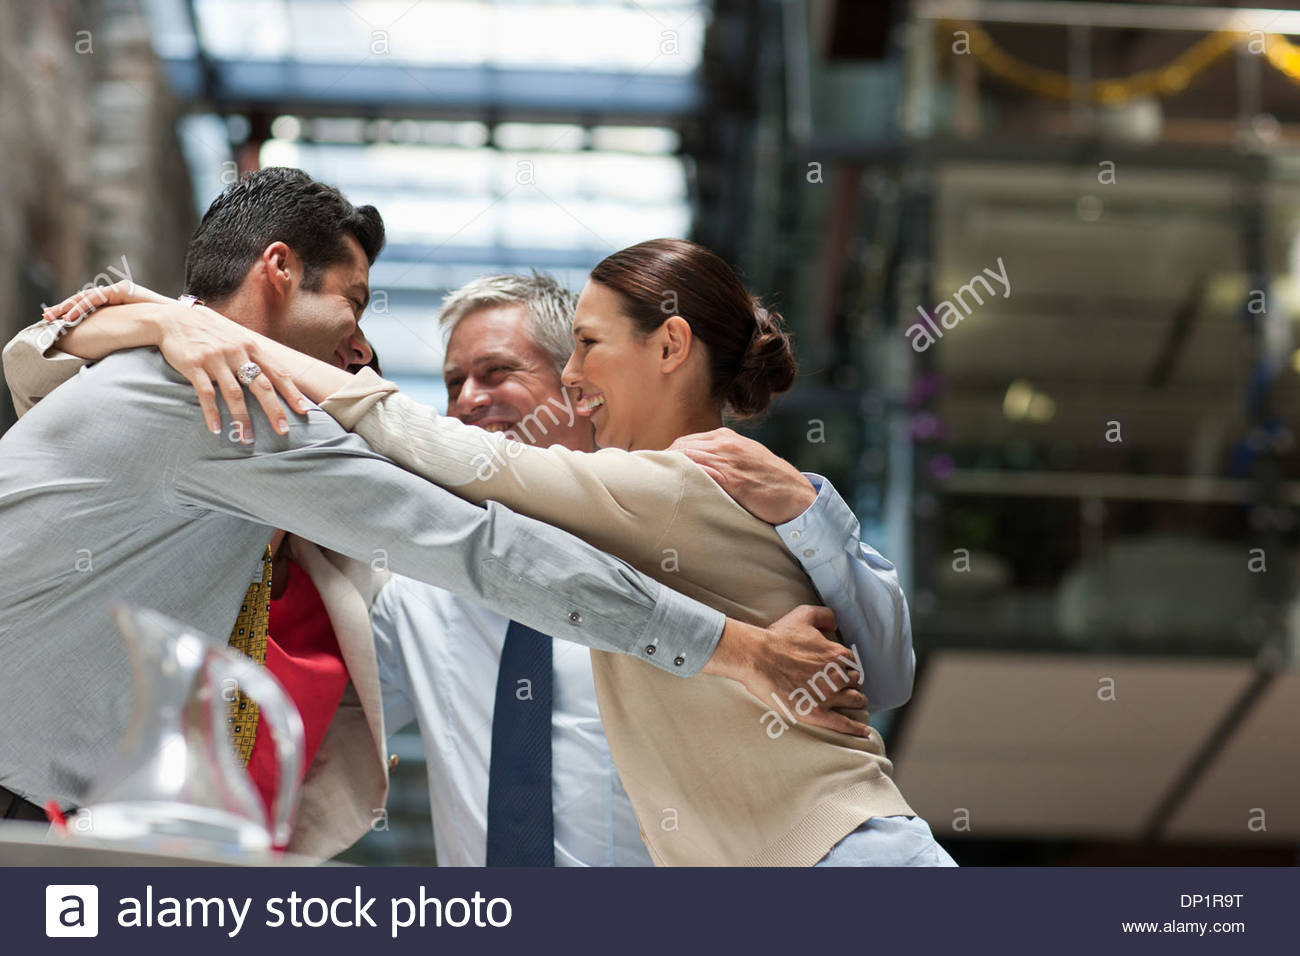 four people hugging stock photos four people hugging stock images